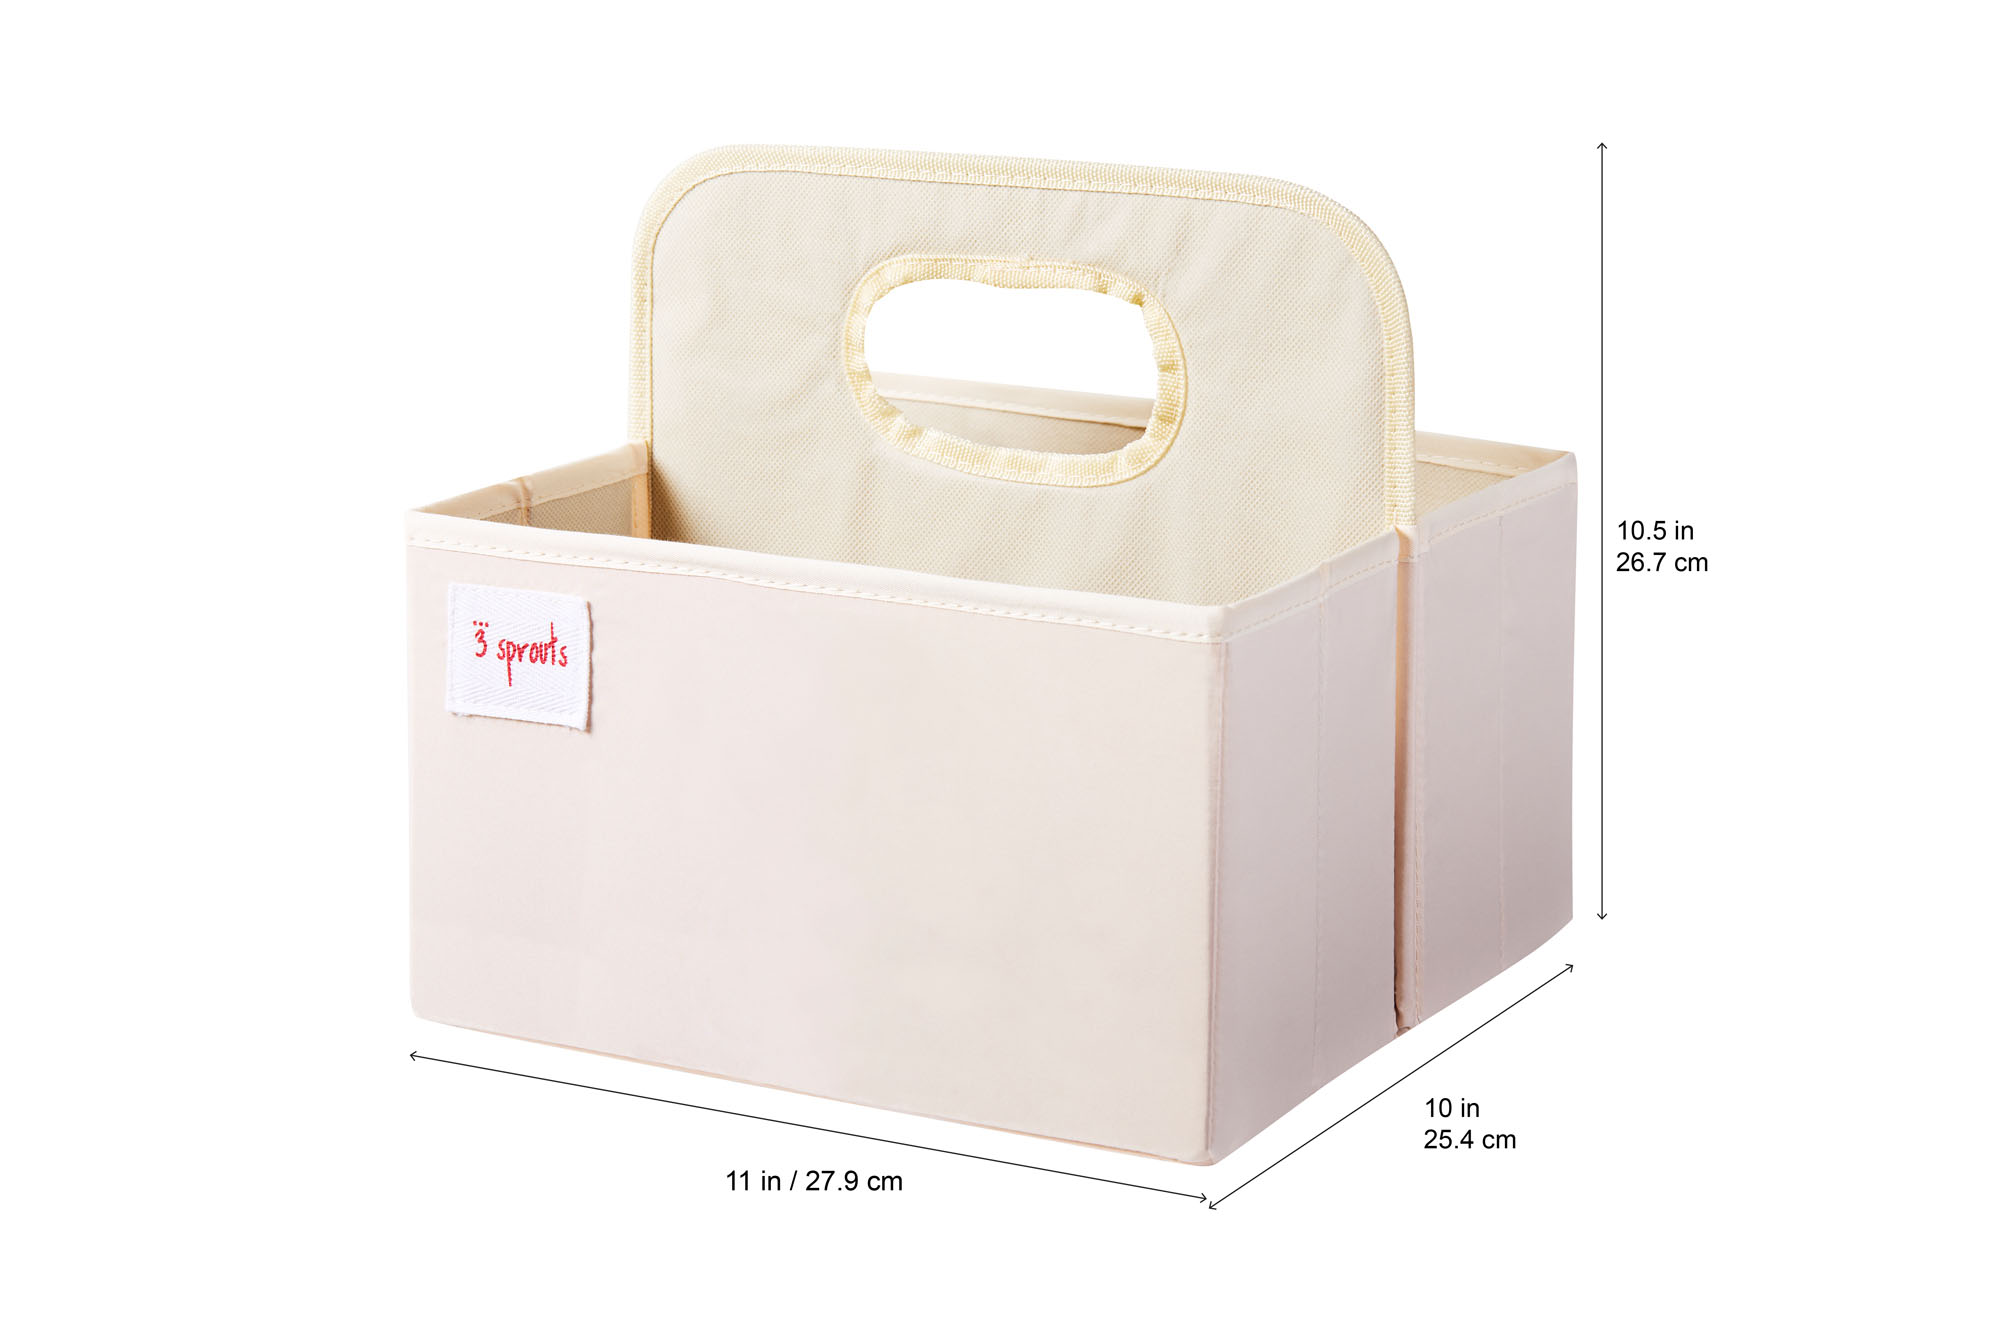 Owl 3 Sprouts Baby Diaper Caddy Organizer Basket for Nursery